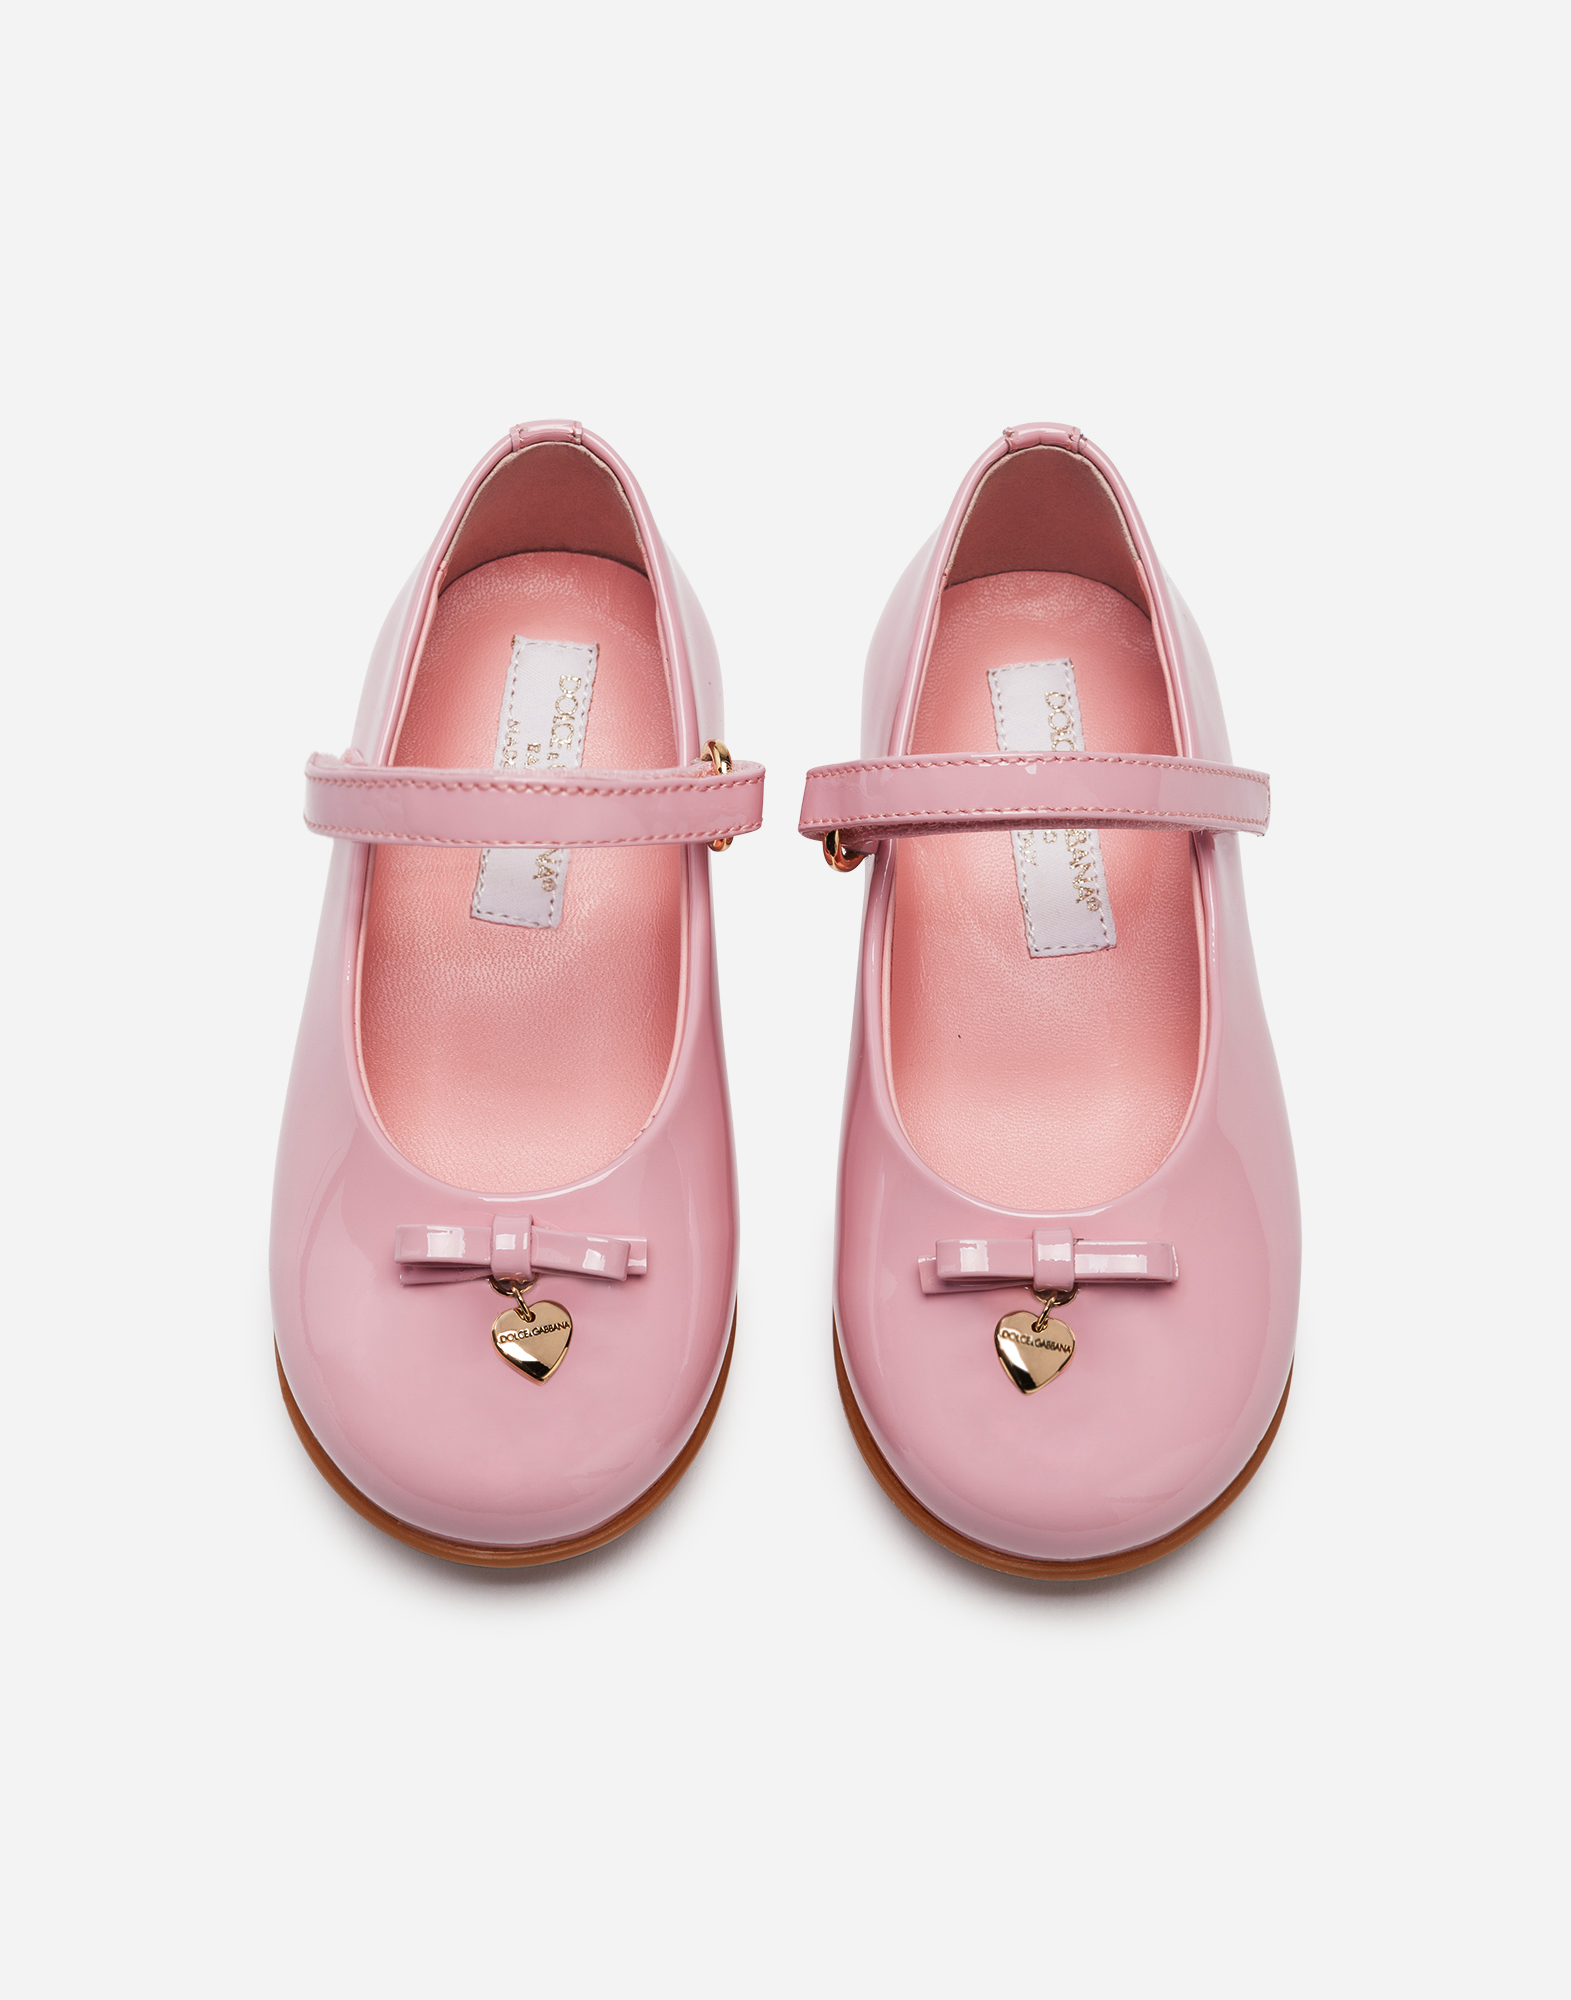 FIRST STEPS BALLET FLATS IN PATENT LEATHER WITH BOW